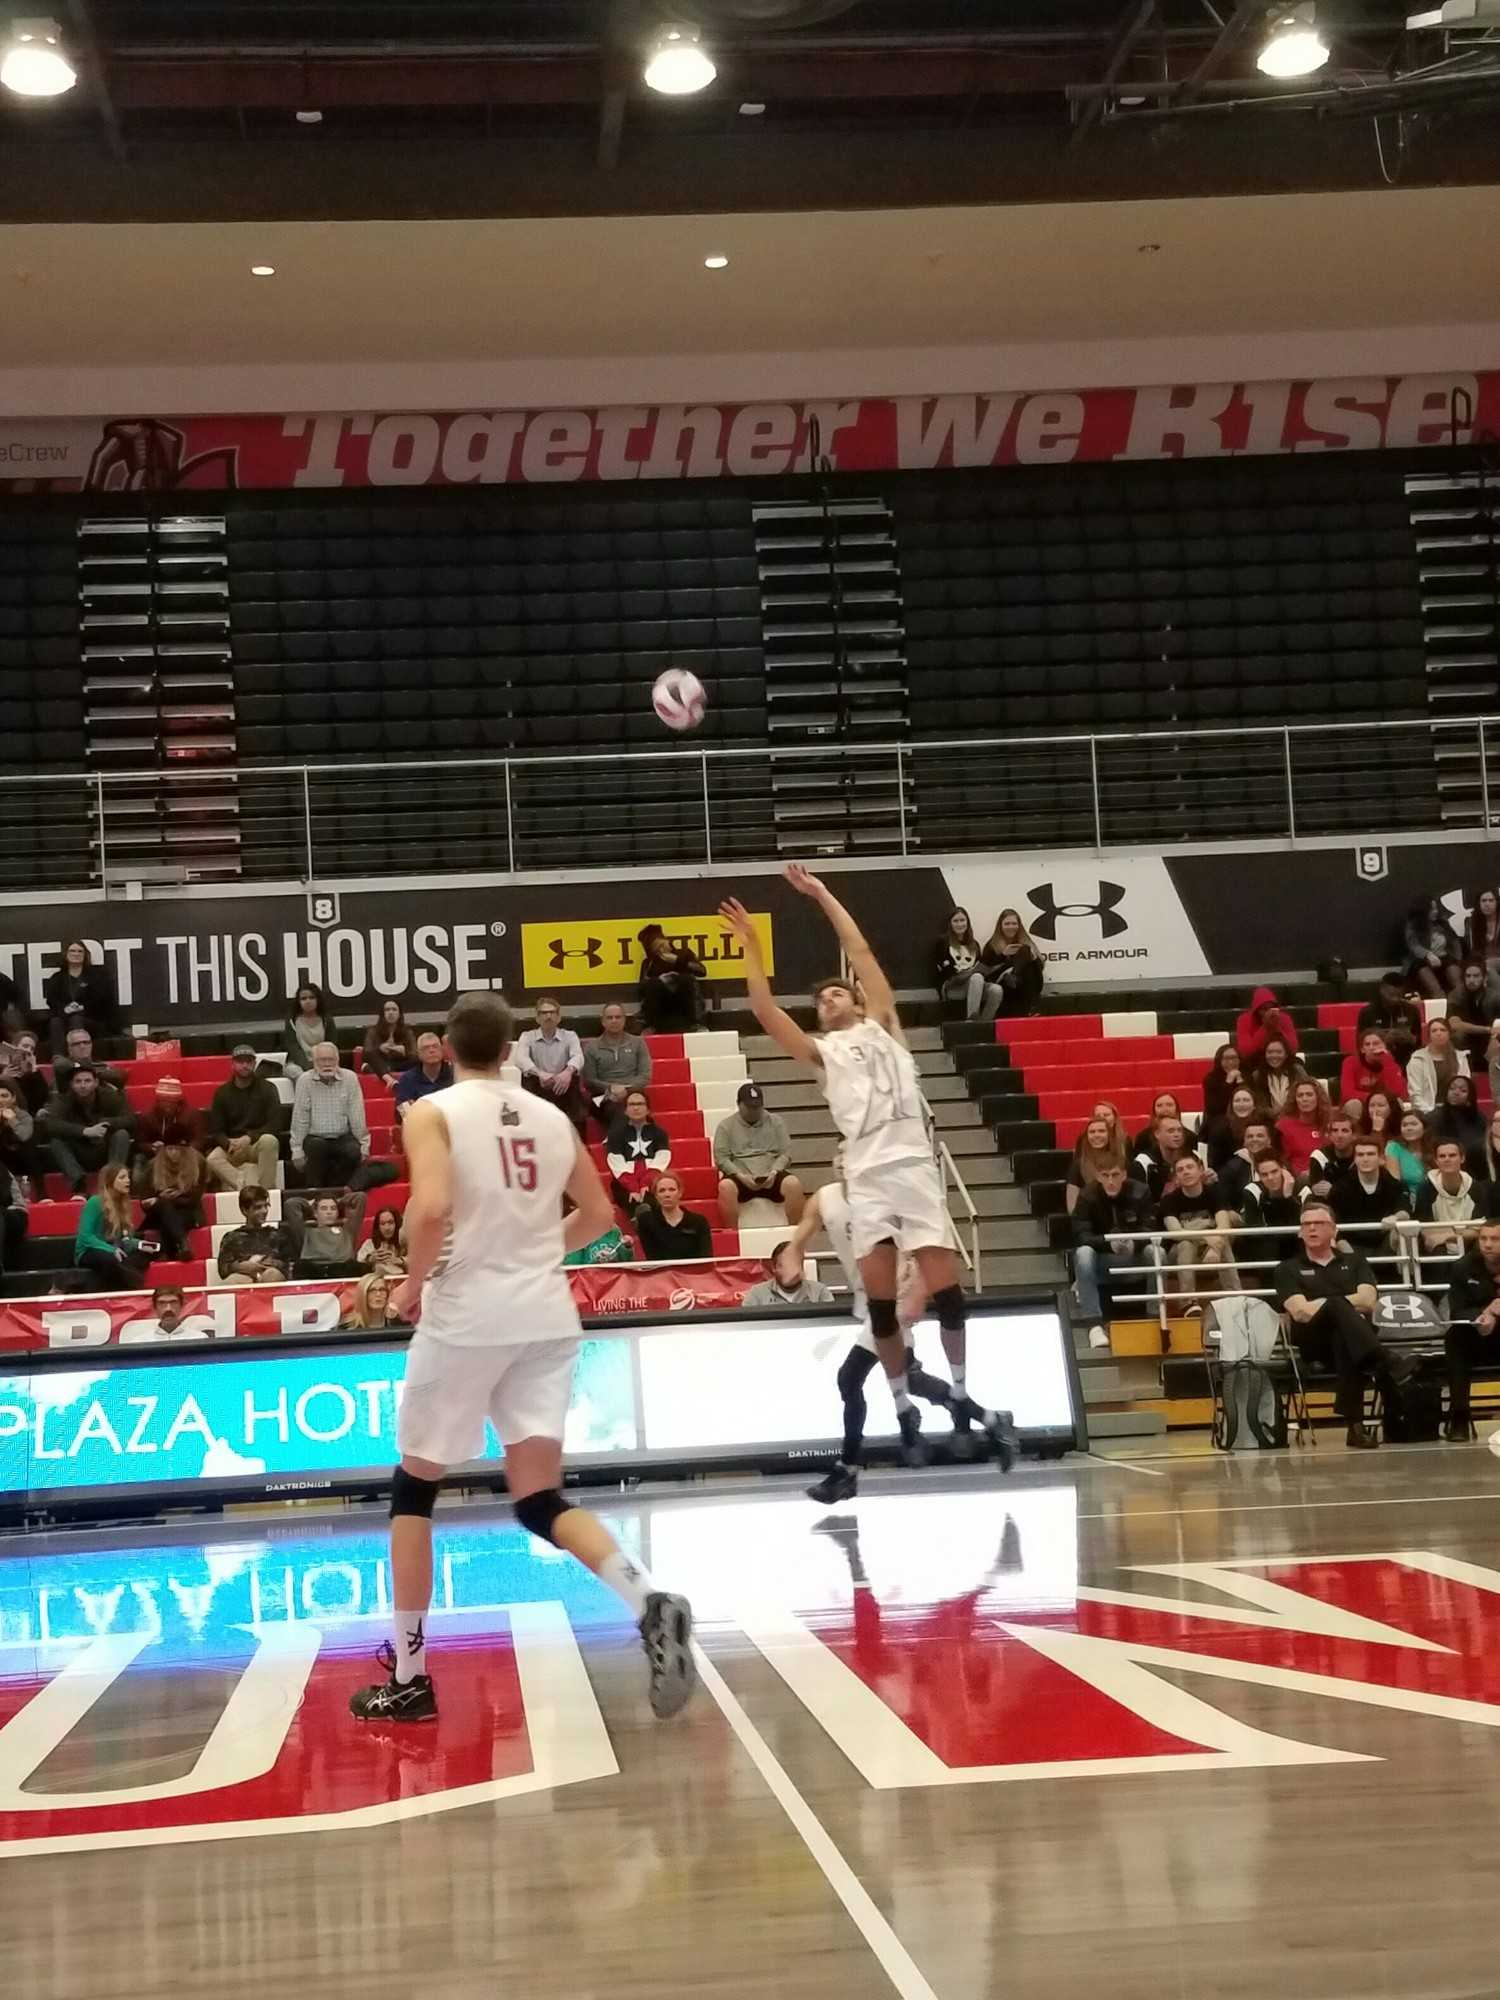 CSUN men's volleyball sets up the ball to get it over the net and score over the Kingsmen. Photo credit: Tera Trujillo